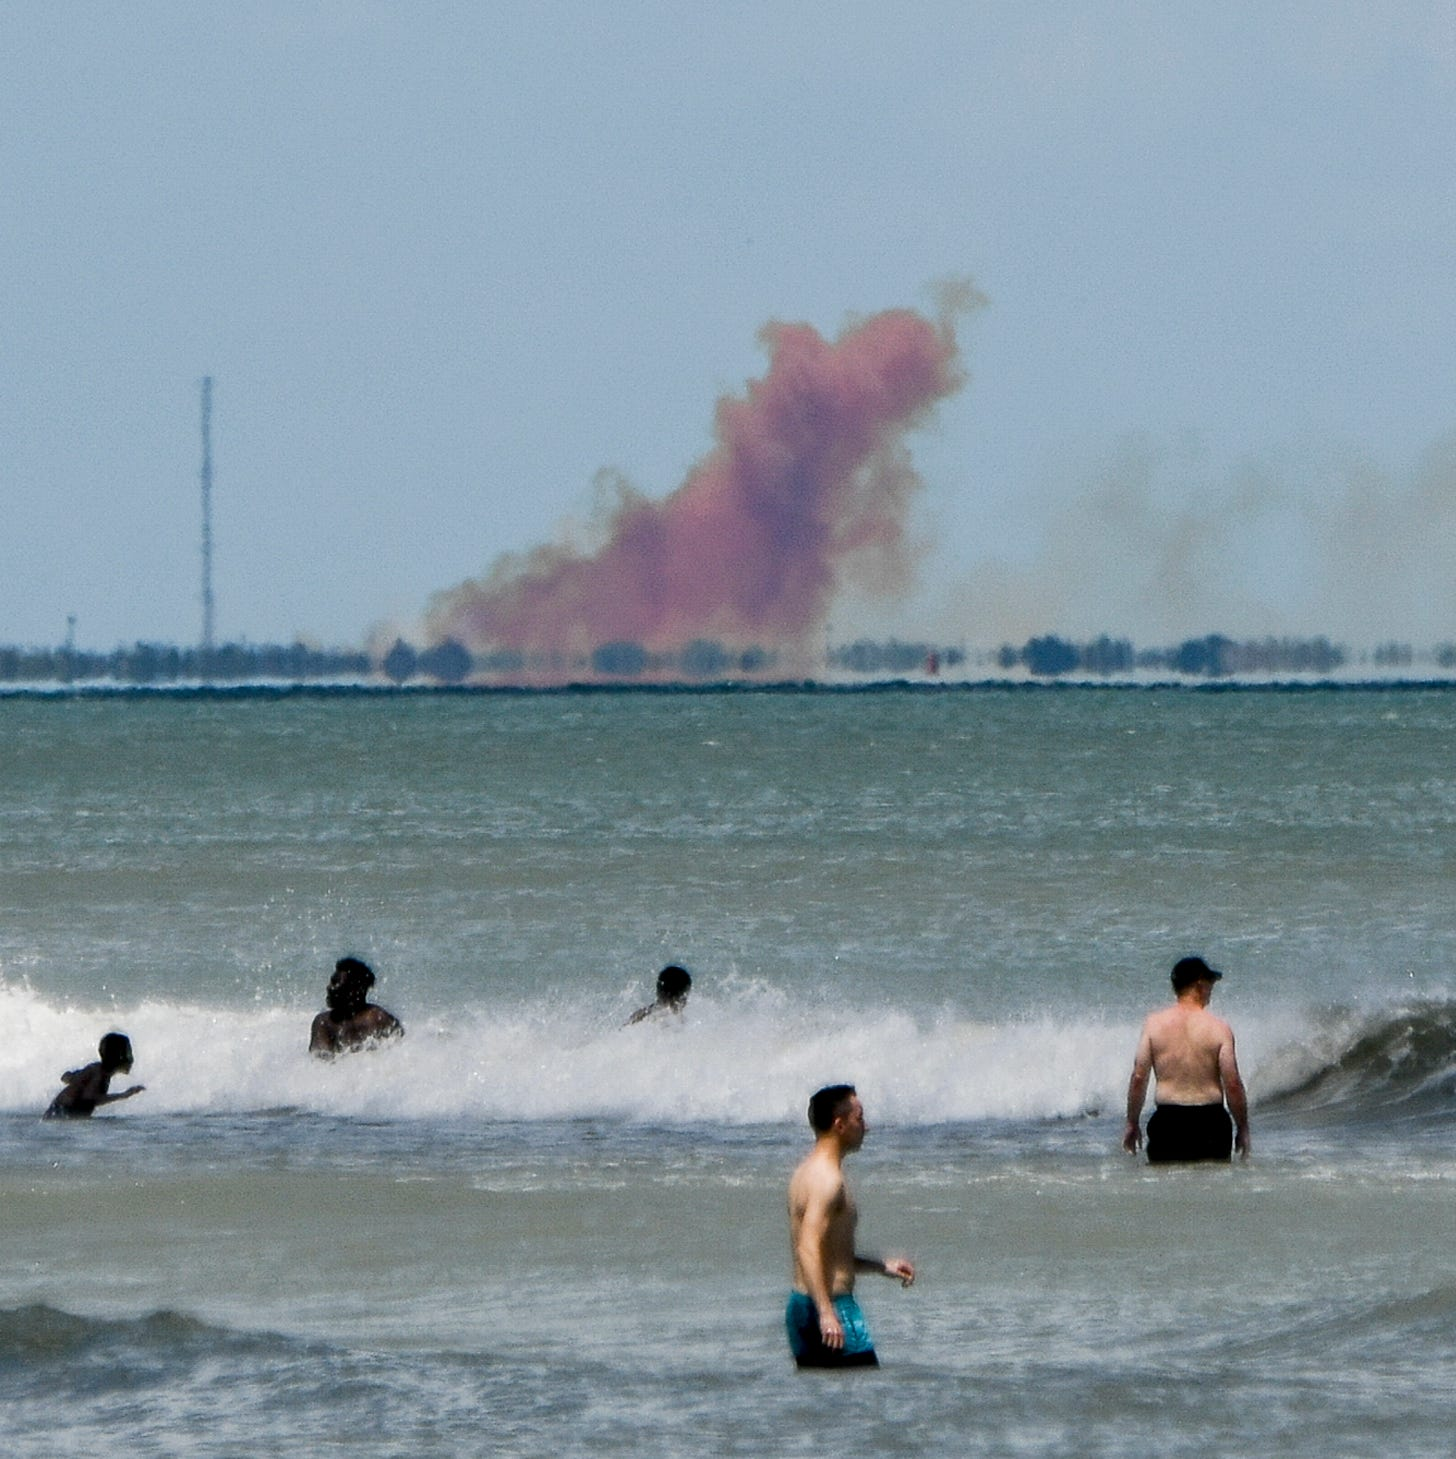 Smoke seen for miles as SpaceX Crew Dragon suffers anomaly at Cape Canaveral